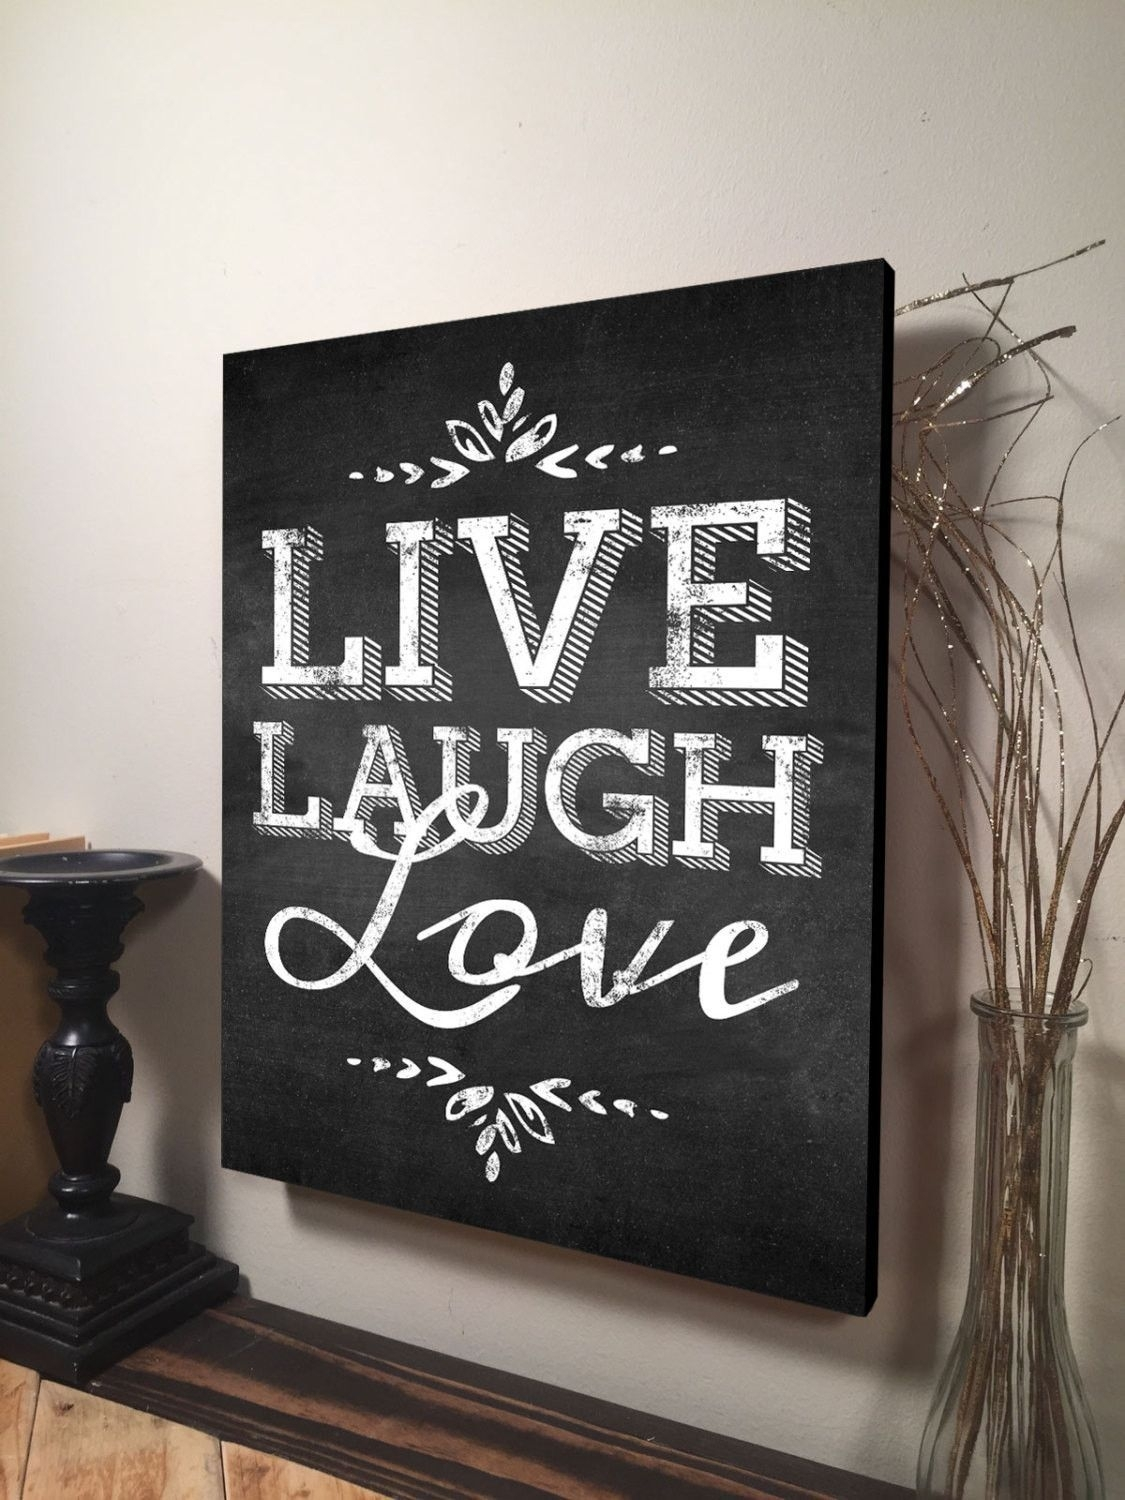 Live Laugh Love Wall Art Inspirational Quote Home Decor Canvas Art With Regard To Most Recent Canvas Wall Art Family Quotes (Gallery 7 of 15)